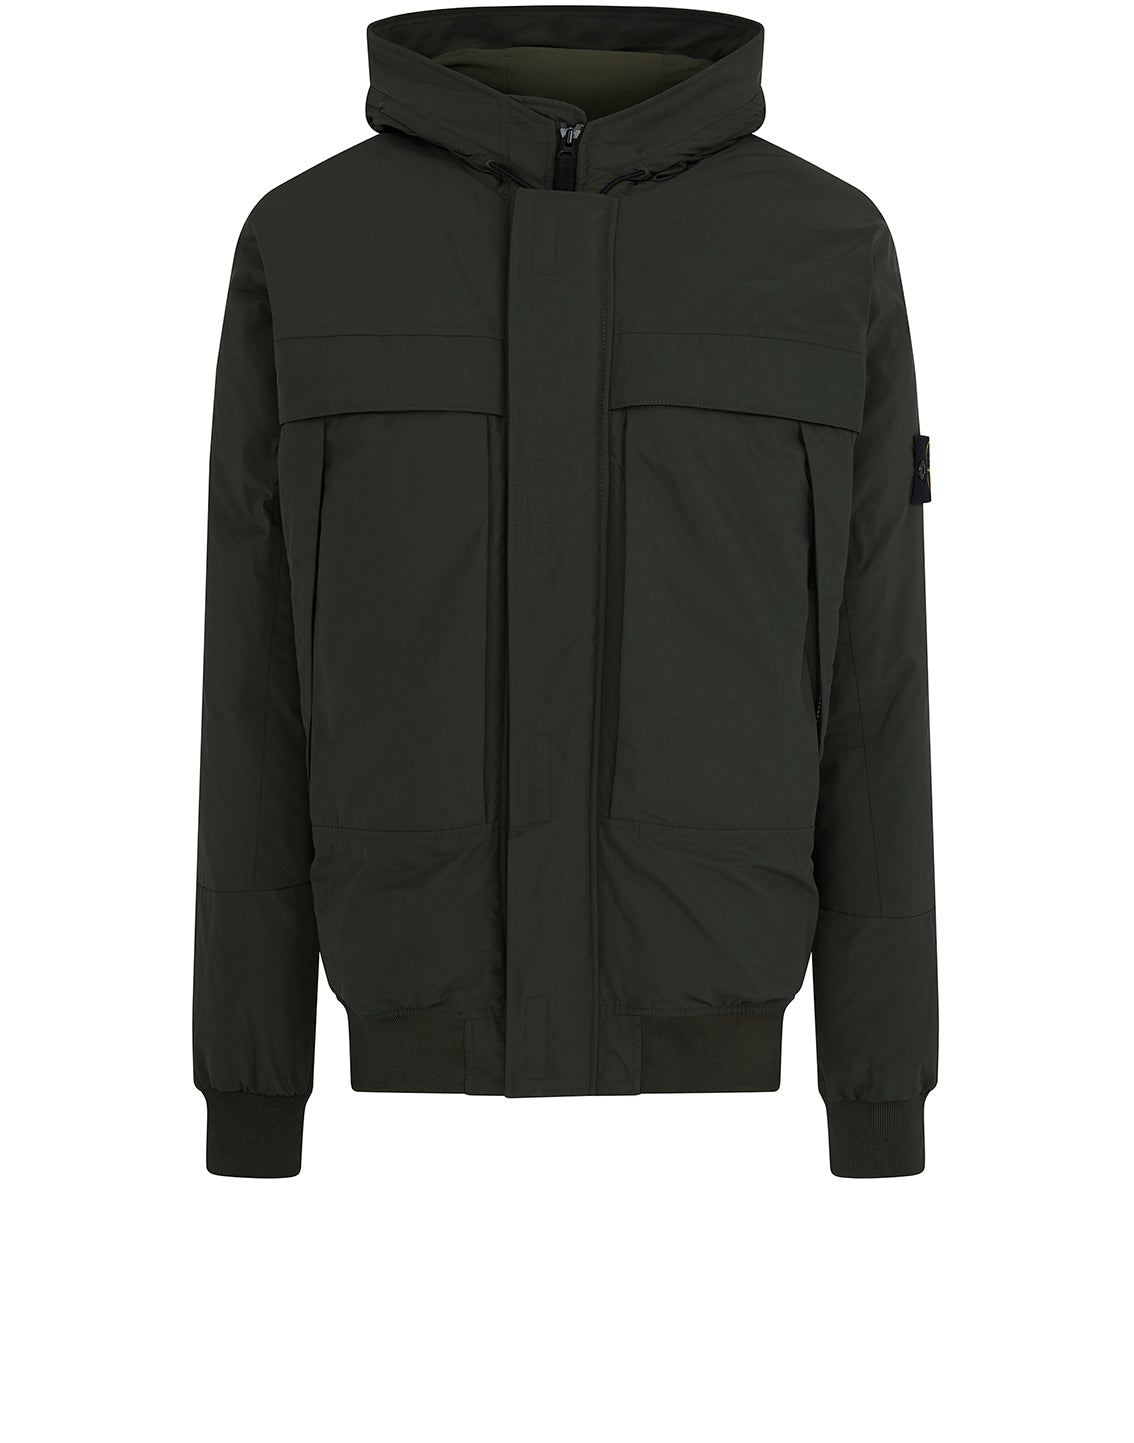 40826 Micro Reps Hooded Down Jacket in Dark Forest